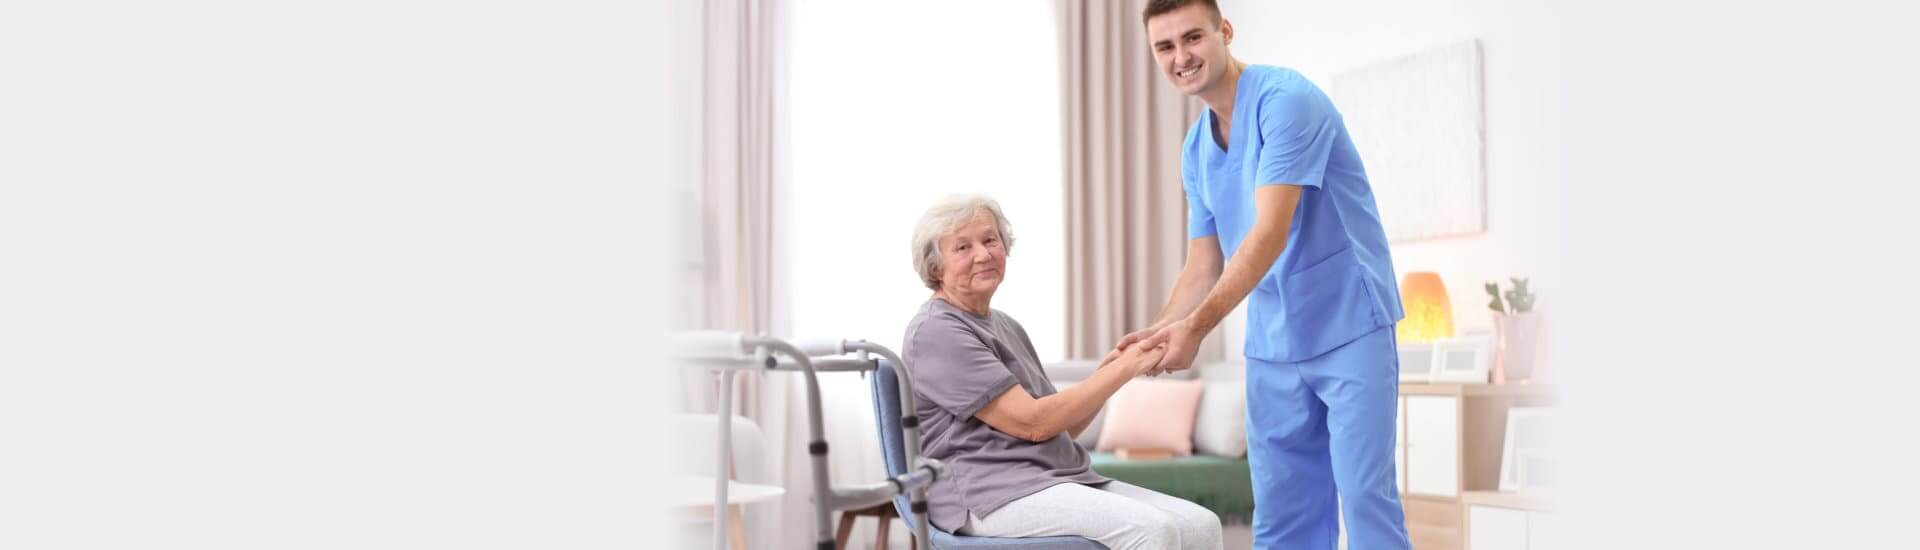 Senior woman walking with assistance of young caregiver